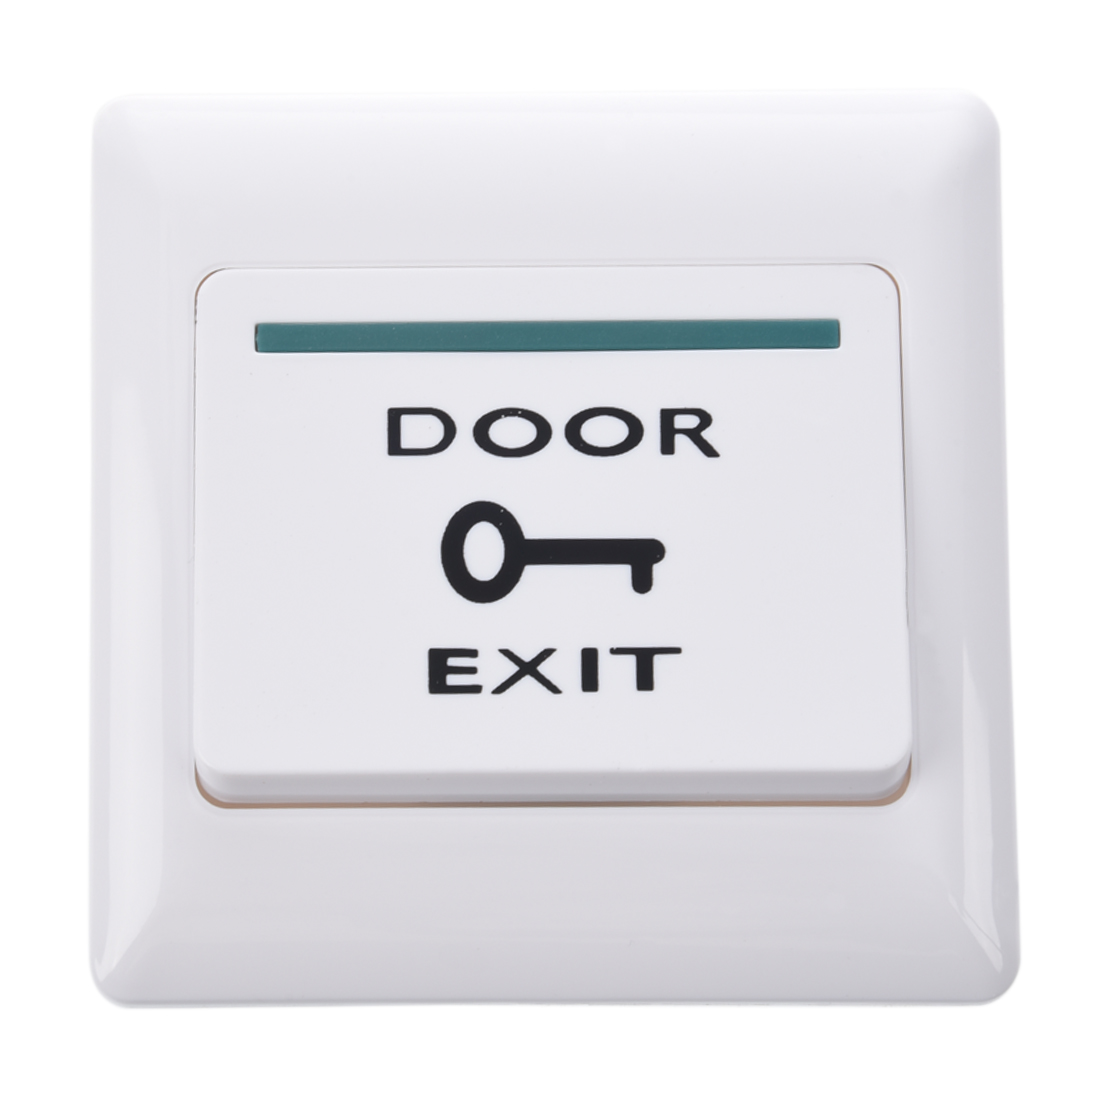 Electronic Door Exit Push Strike Button Panel It is widely used in doors exitsgates and automatic control; Easy to install and use; Net Weight 60g  sc 1 st  eBay & New White Electronic Door Exit Push Strike Button Panel+2 Mounting ...